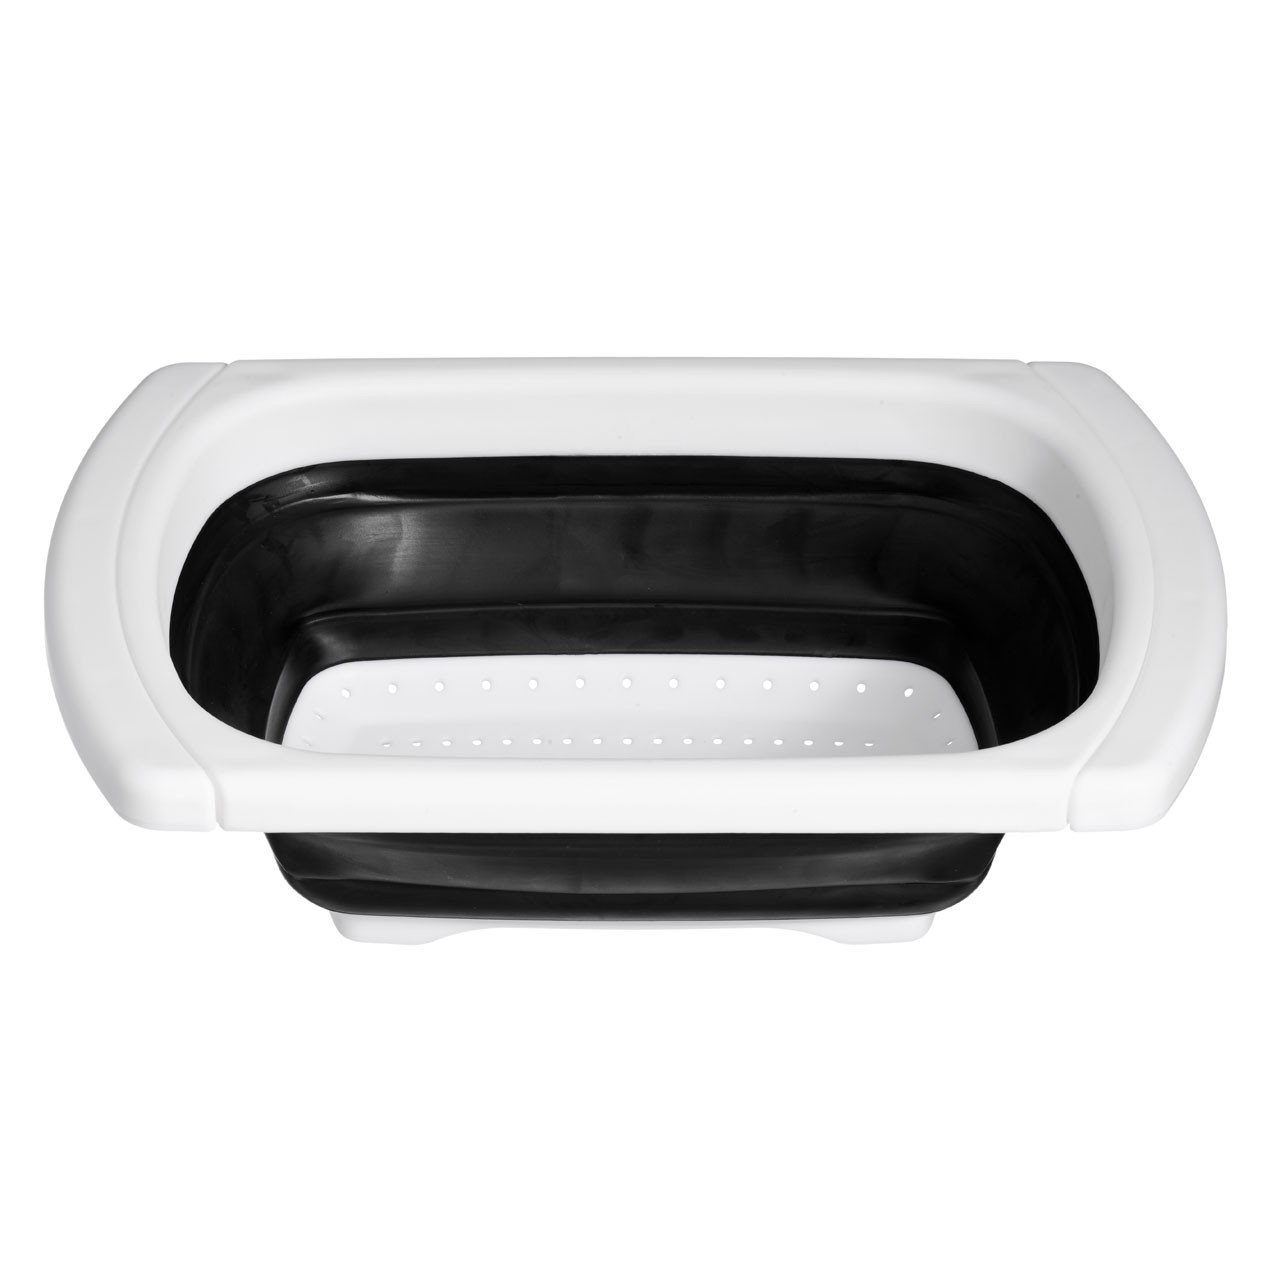 Zing Over Sink Drainer - Black/White